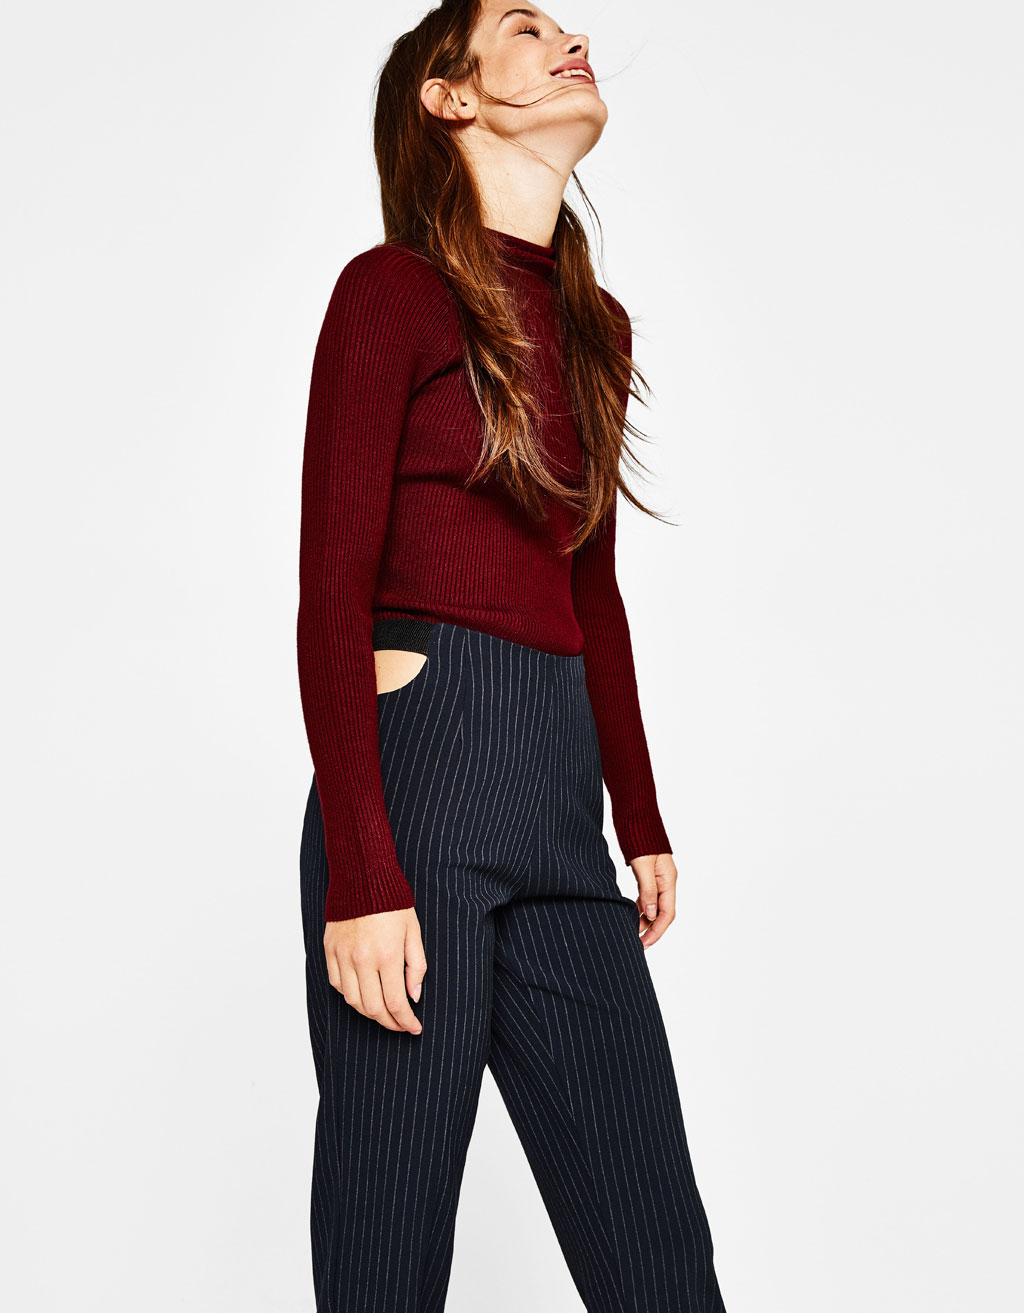 Trousers with cut out waist